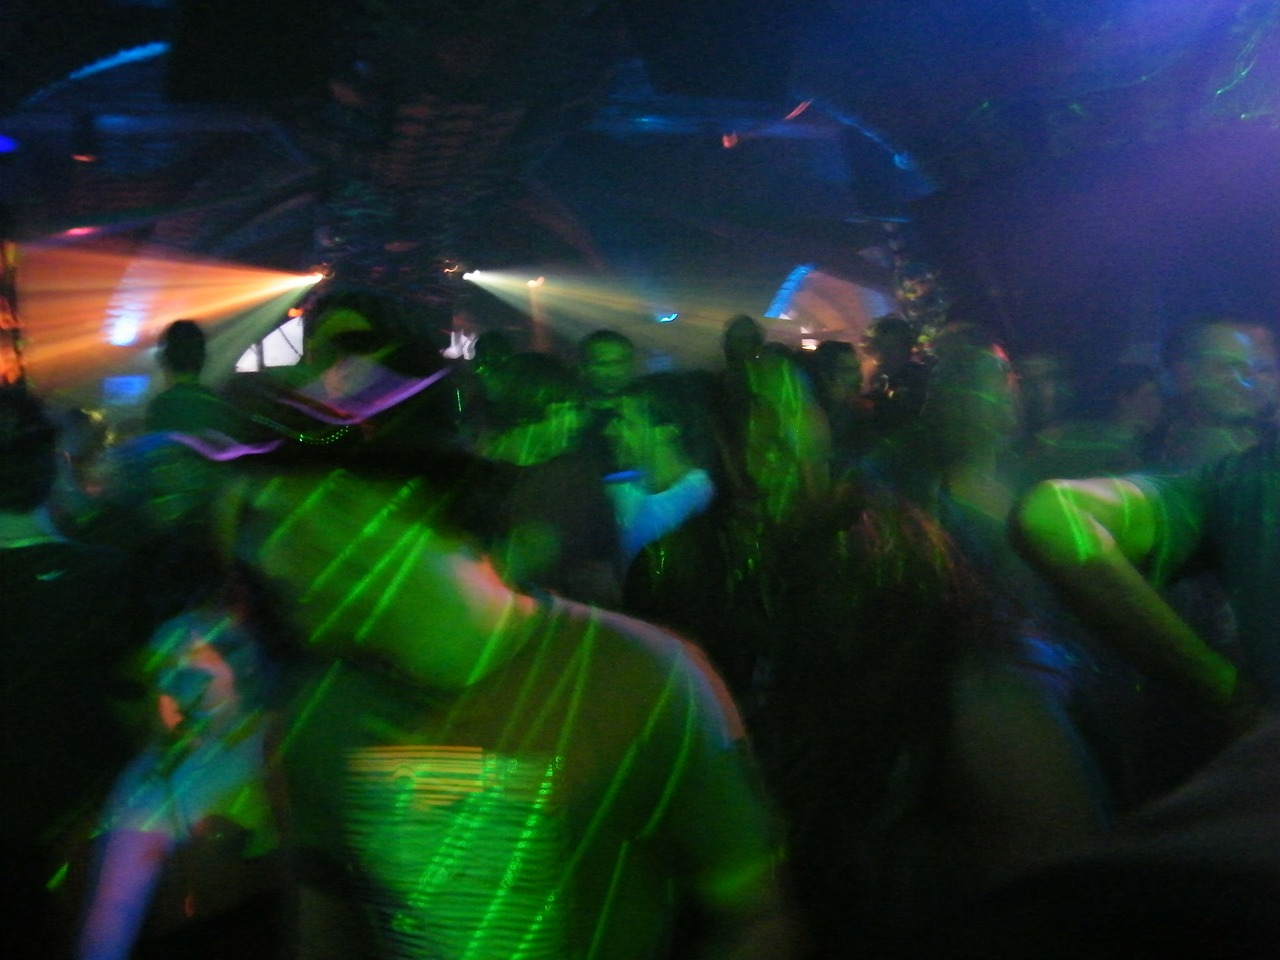 The government to allow the opening of nightclubs